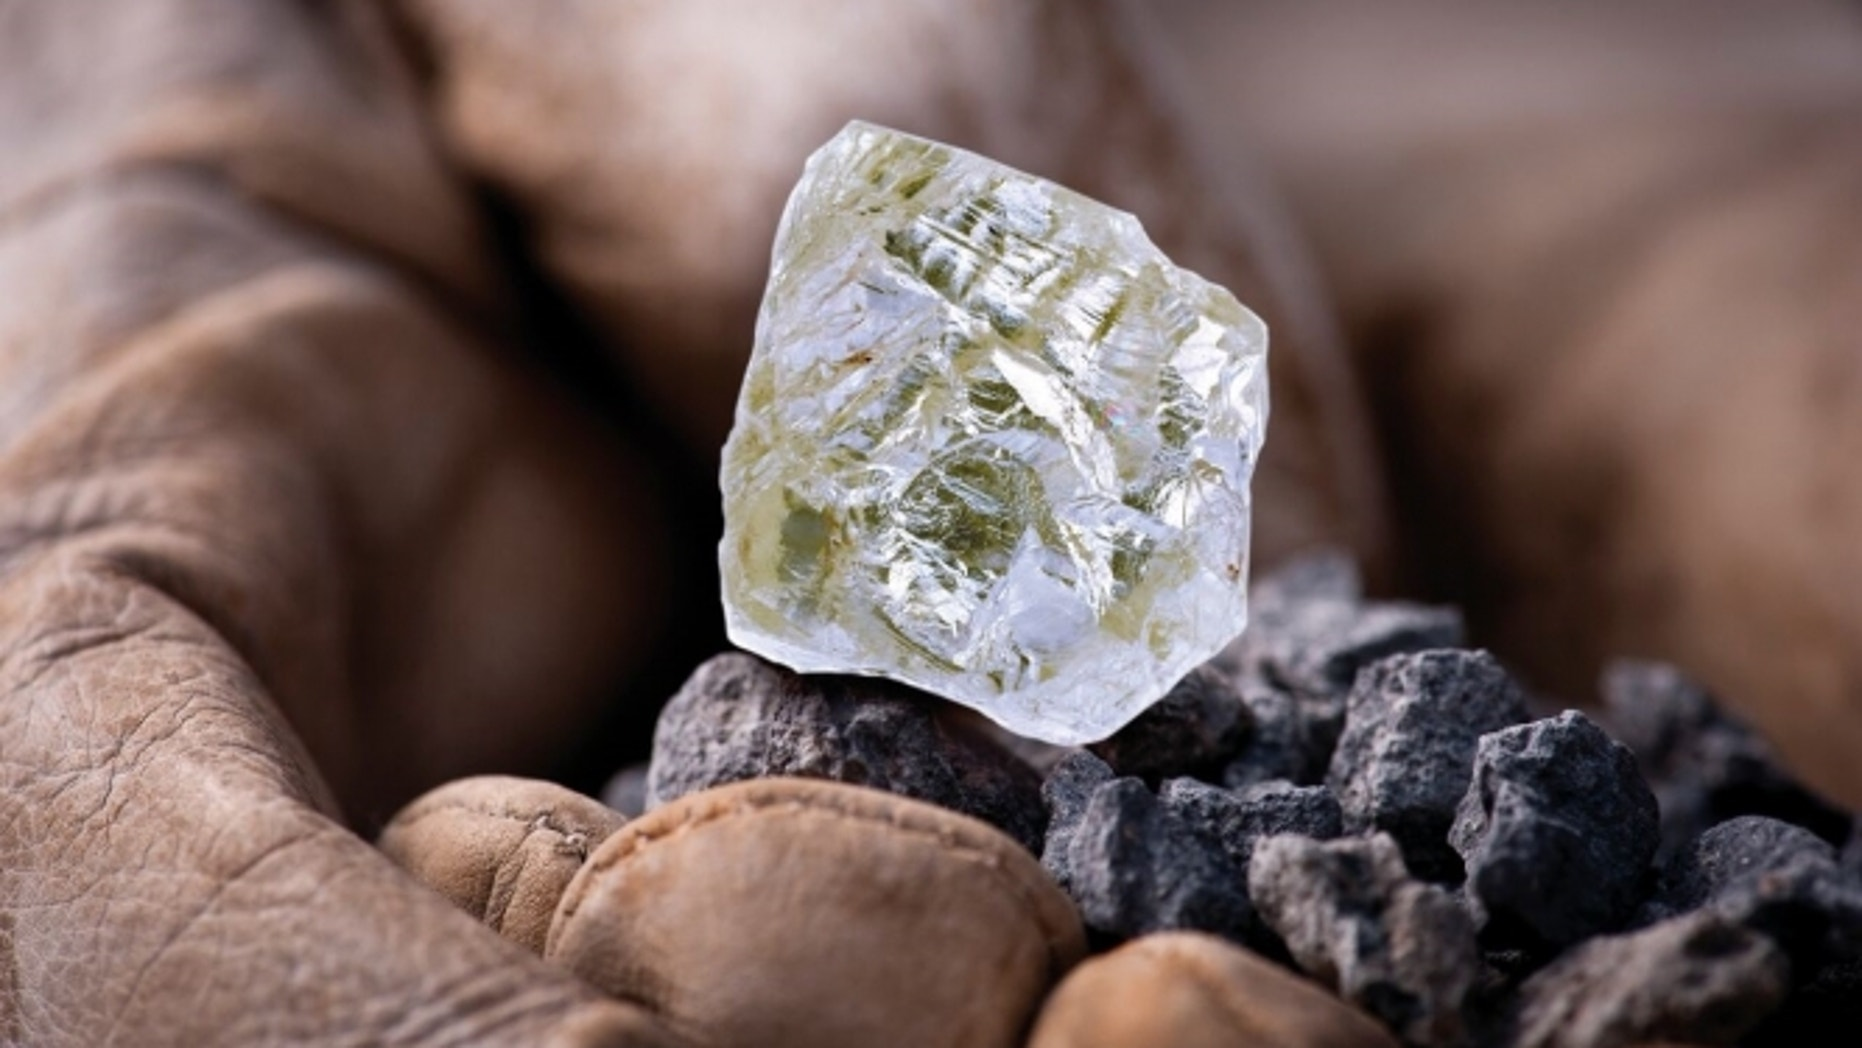 The Foxfire diamond is the largest known uncut, gem-quality diamond mined in North America.